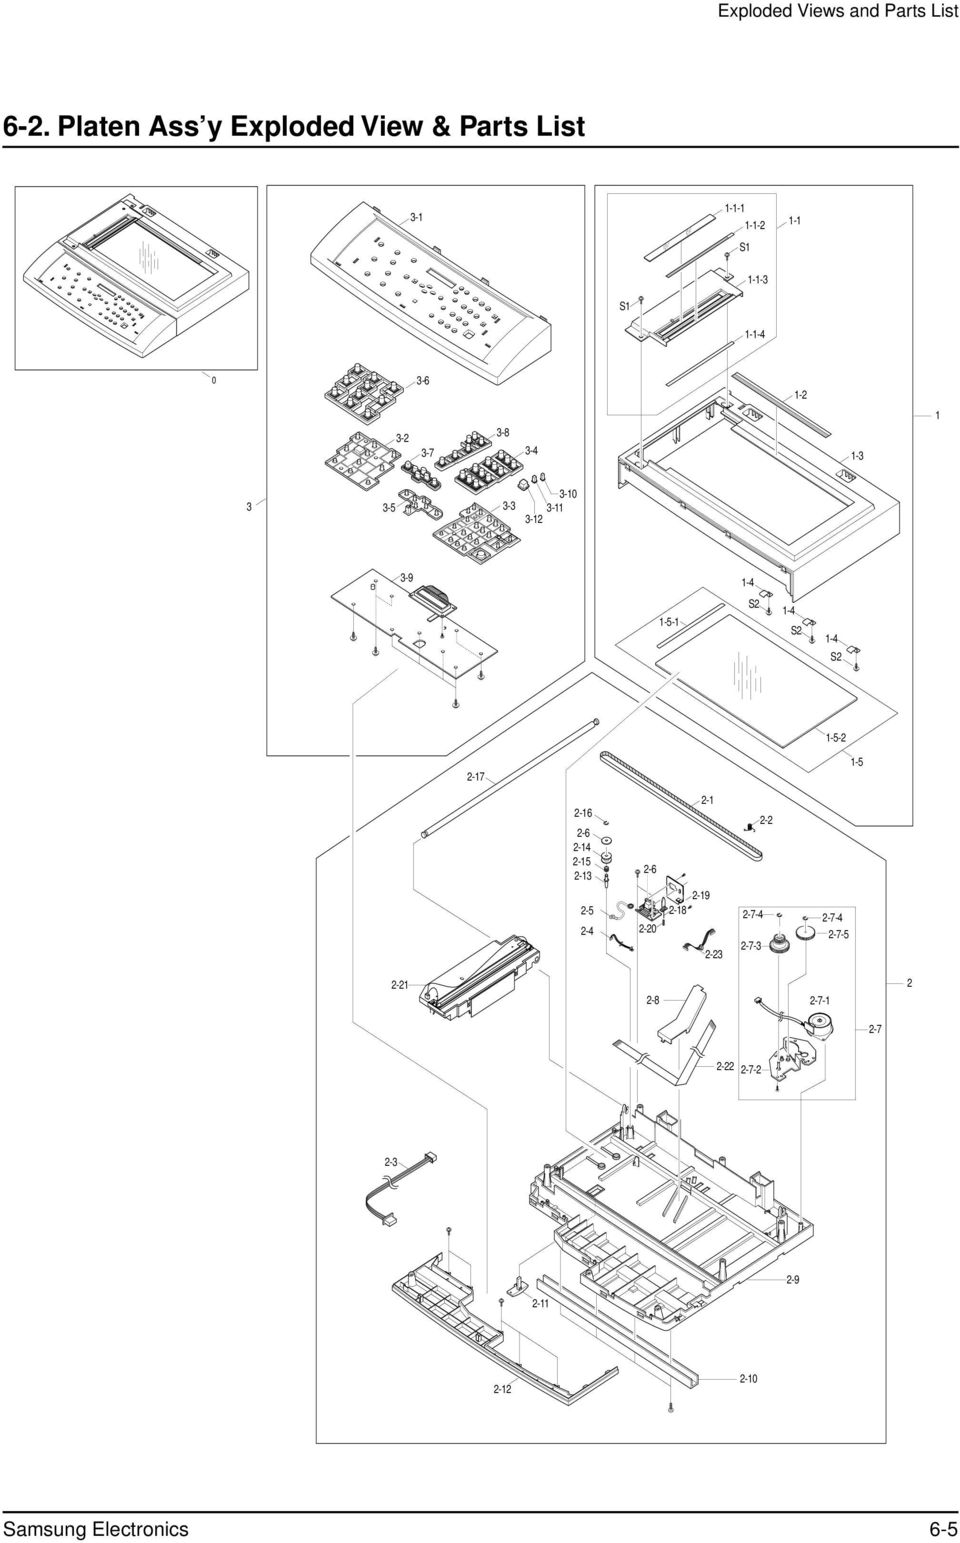 6 exploded view parts list pdf 7.3 Powerstroke IPR Sensor Location 2 6 2 6 2 4 2 5 2 3 2